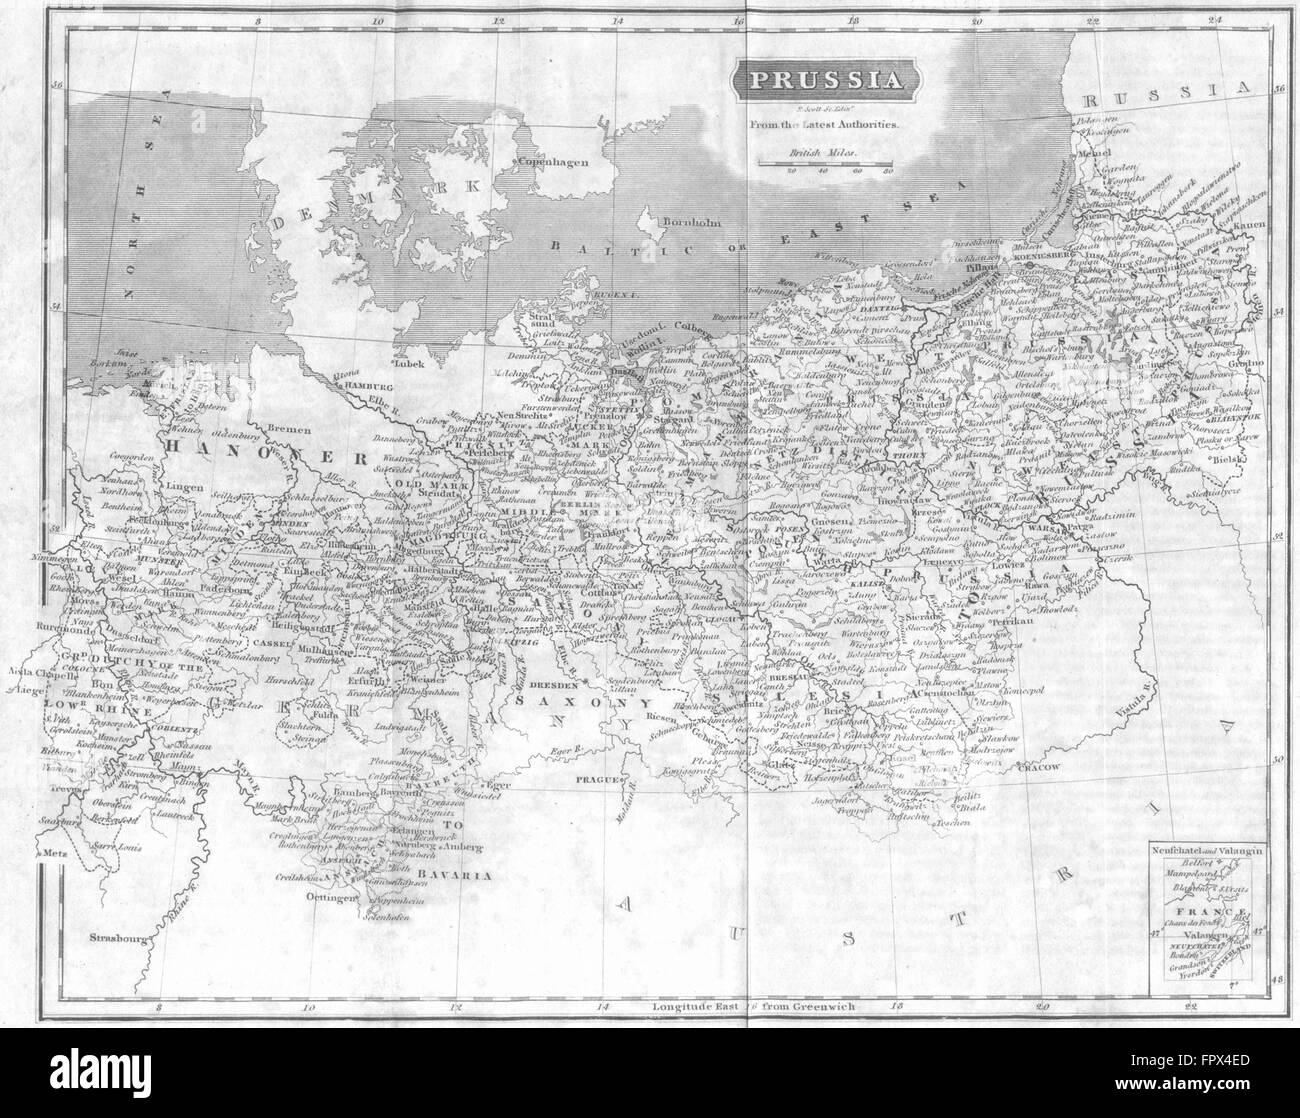 GERMANY: Prussia: Gracie, 1823 antique map Stock Photo